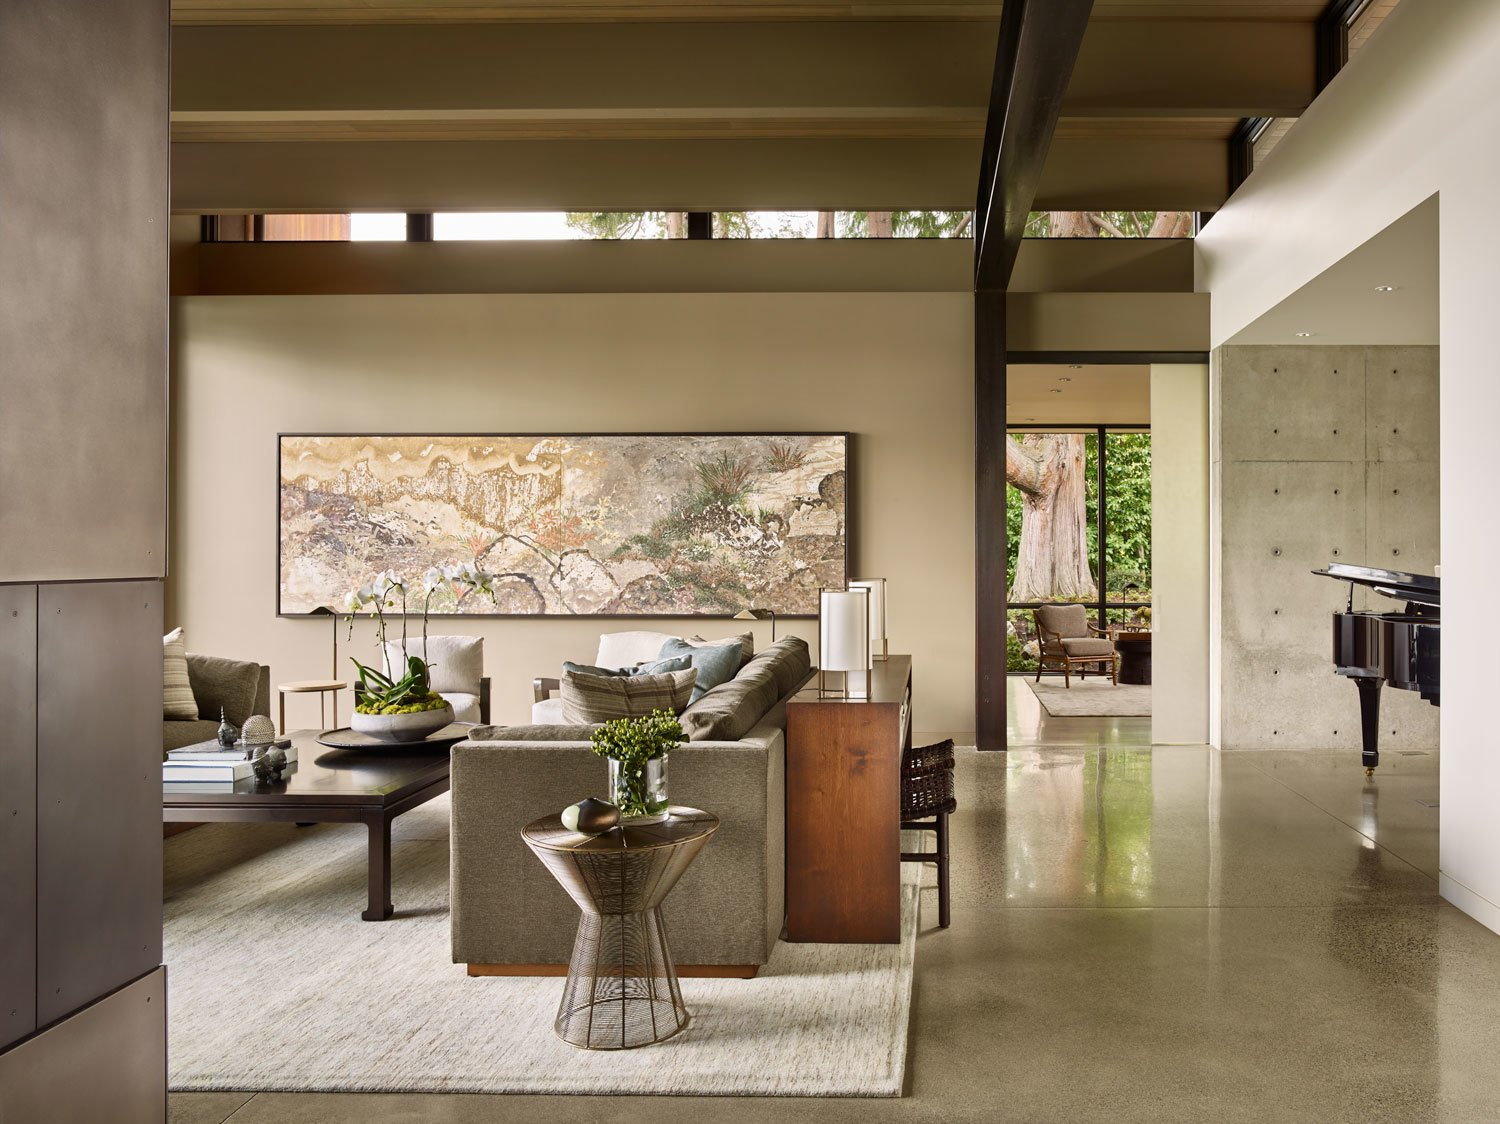 Living Room, Console Tables, End Tables, Recessed Lighting, Sofa, Chair, Coffee Tables, and Concrete Floor Concrete, steel and wood are used extensively through the interior  Union Bay Residence by NB Design Group